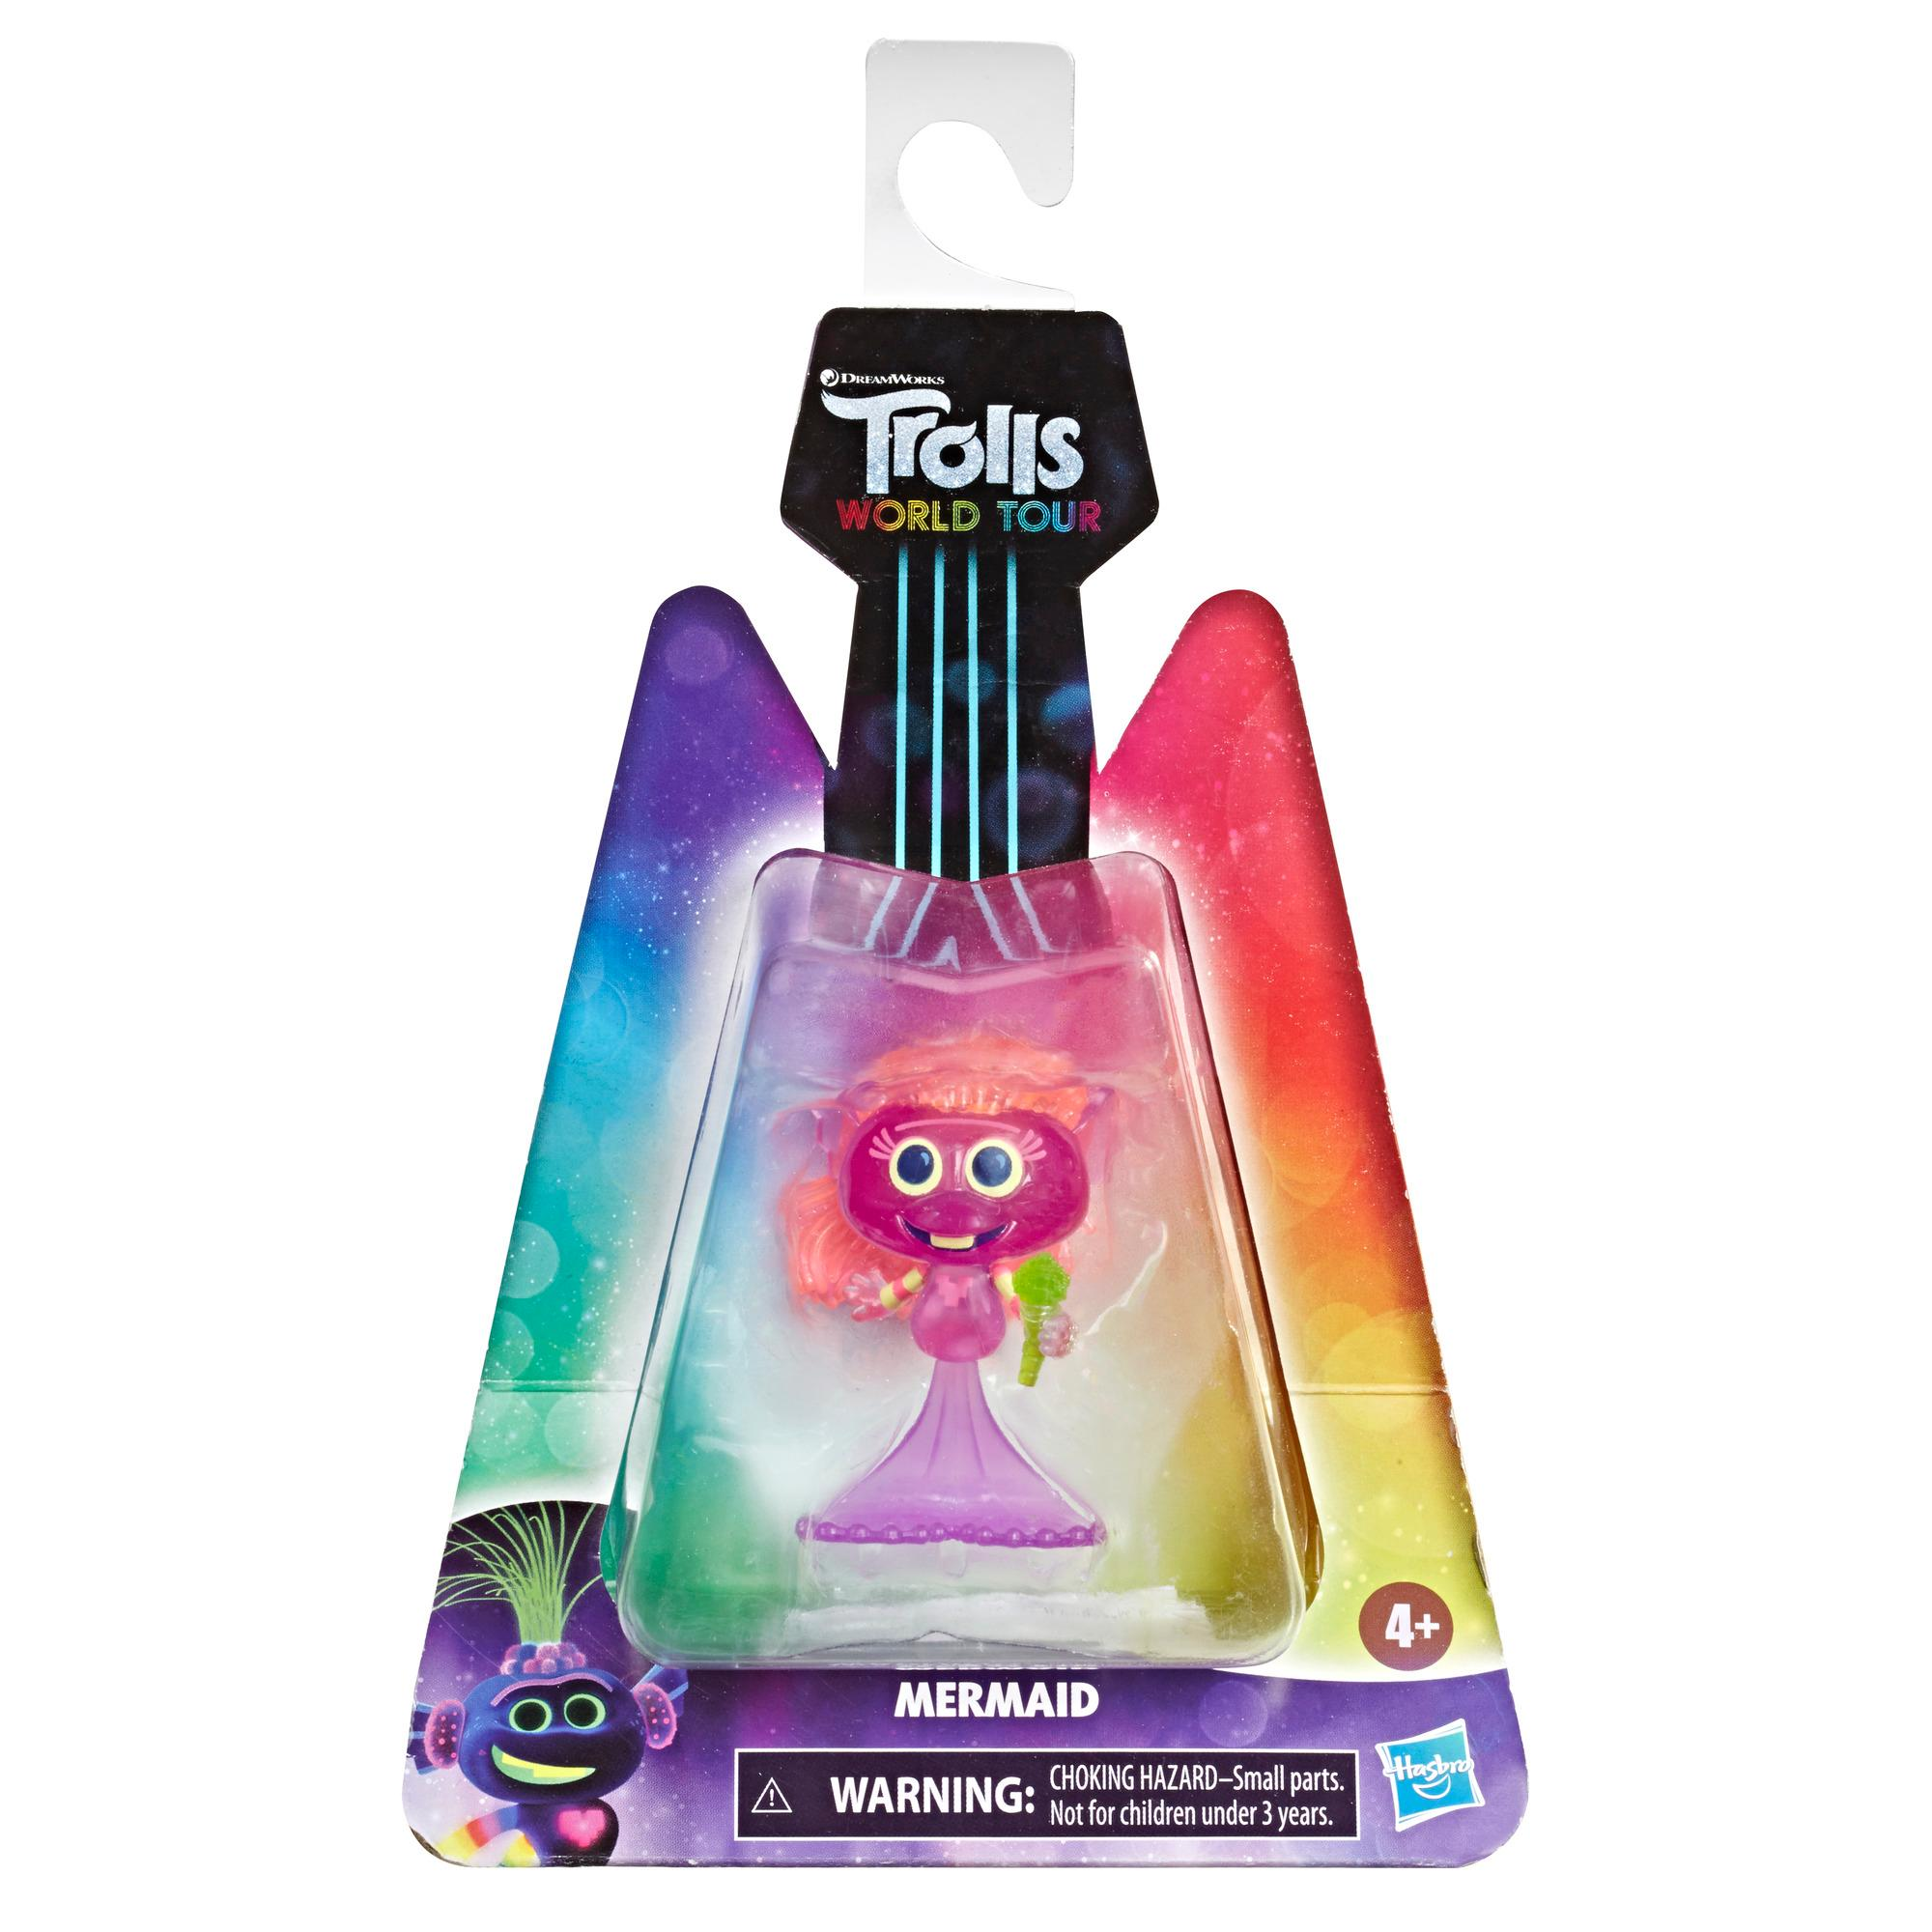 TROLLS TOUR MUNDIAL MERMAID